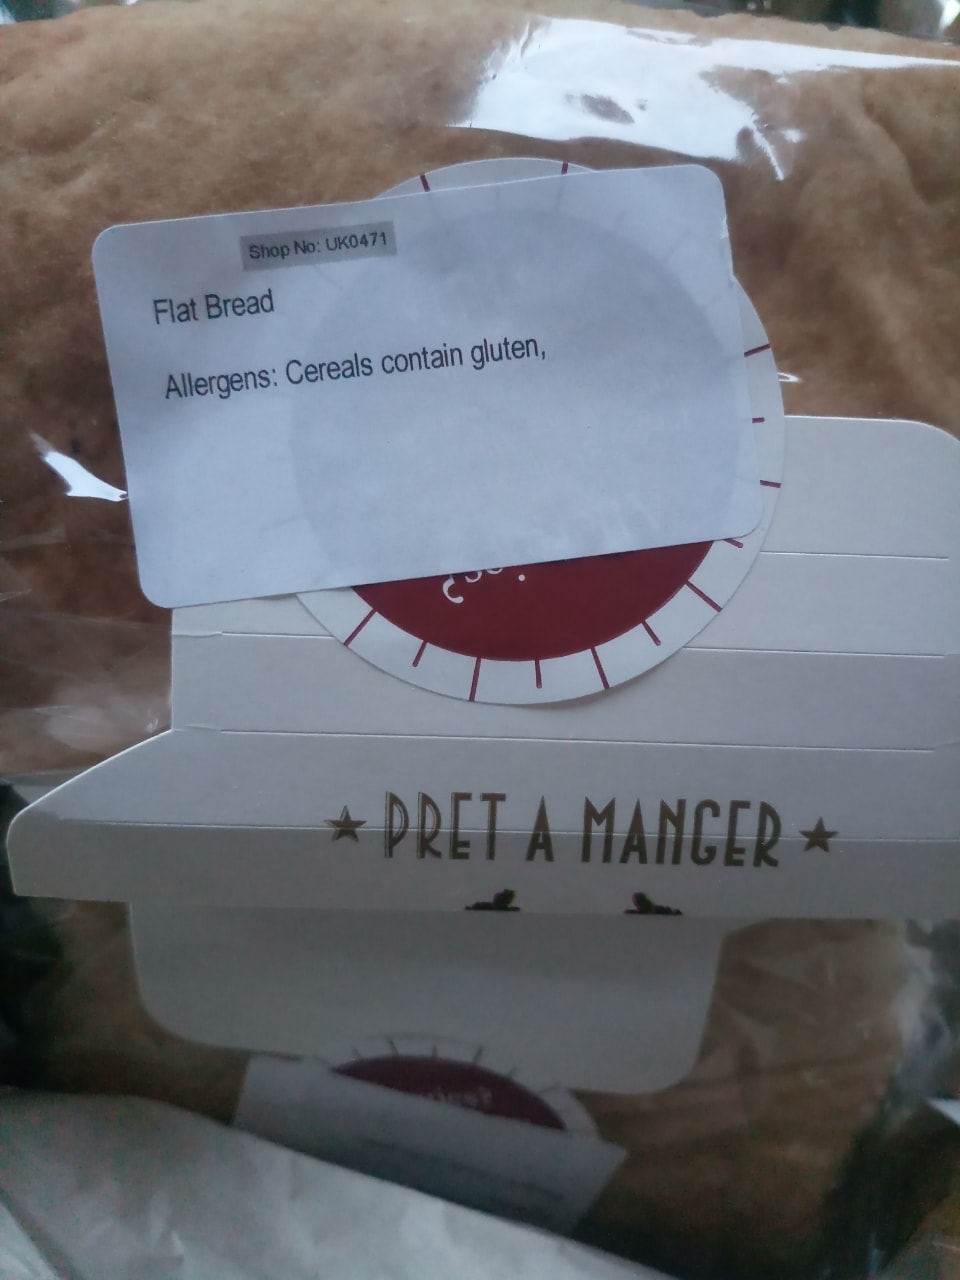 Pret a Manager- 3 Flat breads